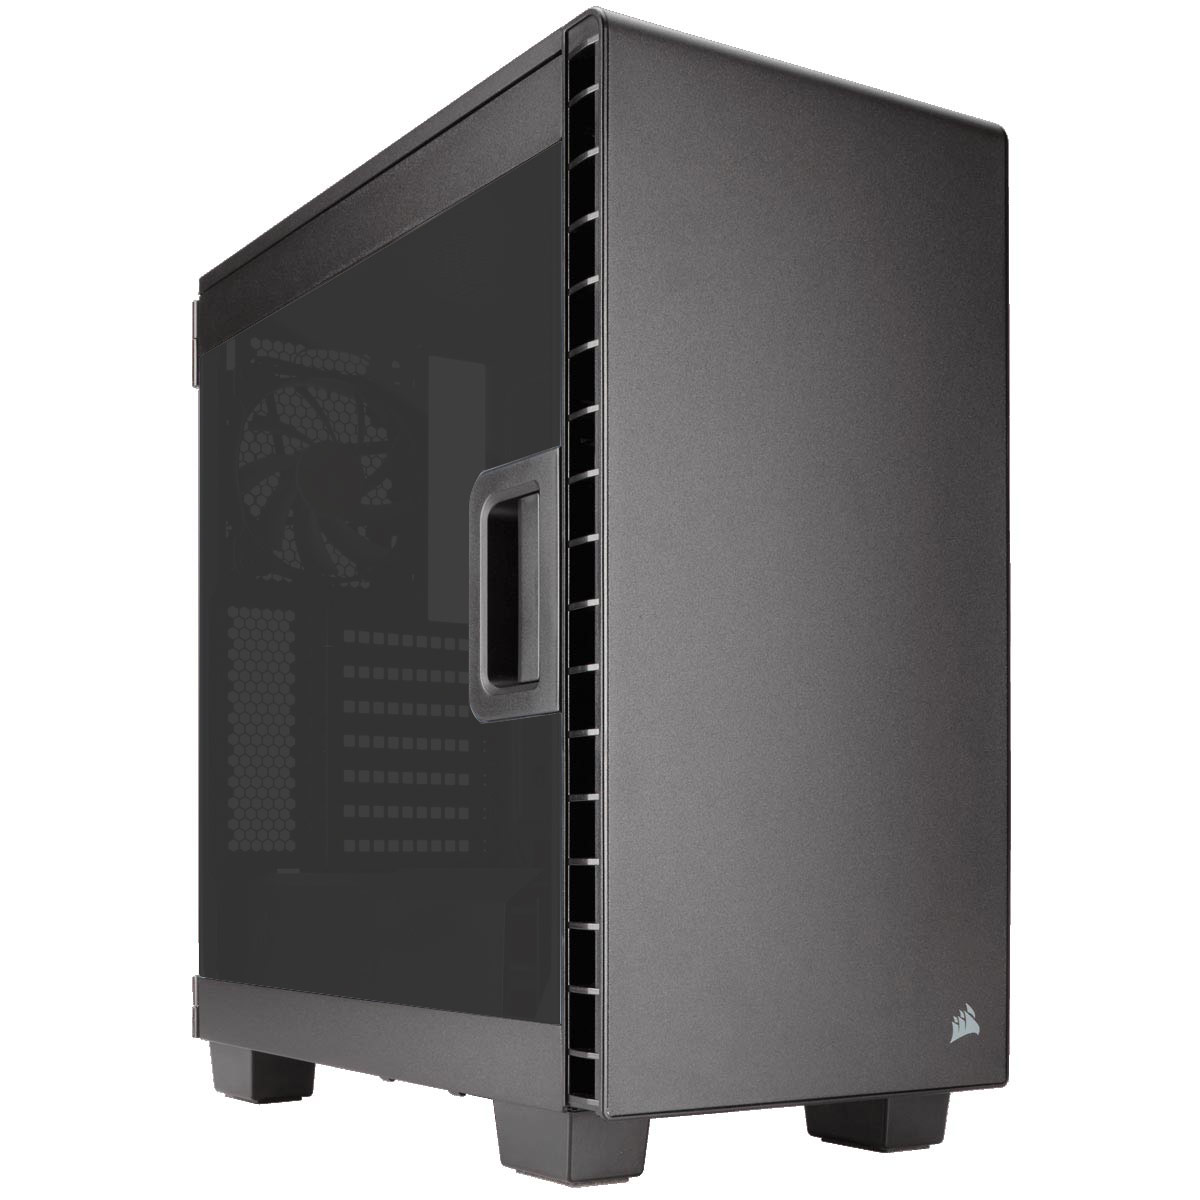 PC de bureau LDLC PC Forcer Intel Core i5-6600K (3.5 GHz) 16Go SSD 120 Go HDD 1 To NVIDIA GeForce GTX 960 2048 Mo (sans OS - non monté)